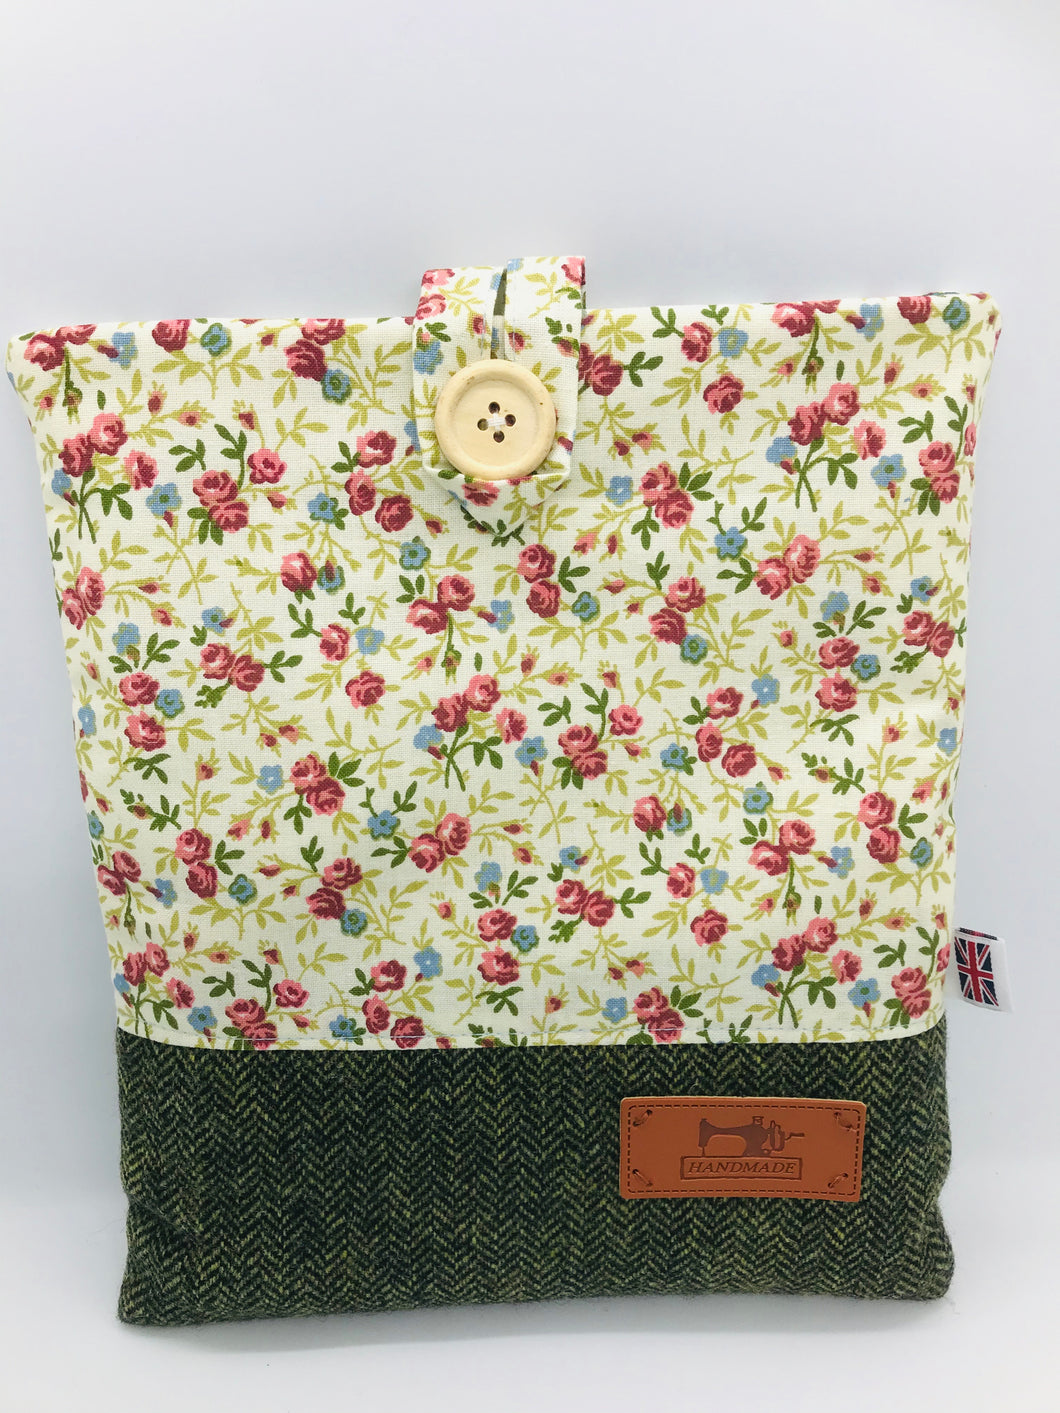 Floral Summer & Garden Green, Tablet, Kindle, IPad Cover, British Tweed & Floral Cottons